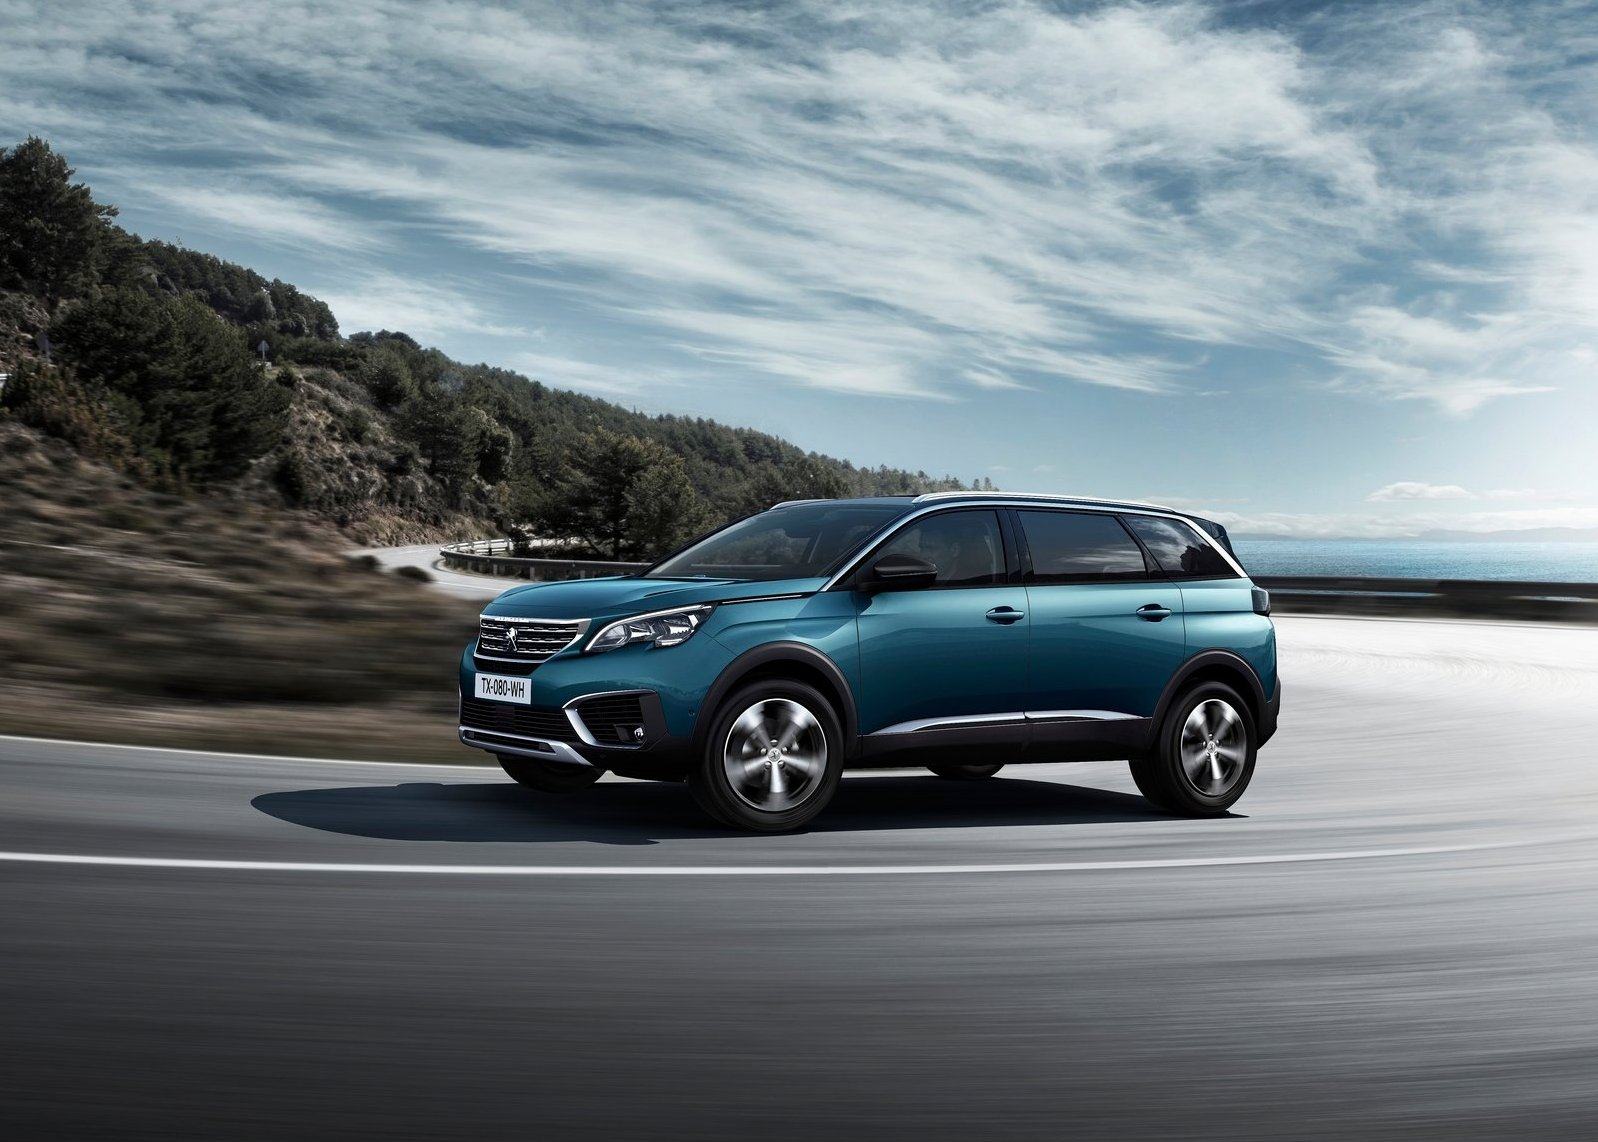 2017 peugeot 5008 suv prices review new suv prices. Black Bedroom Furniture Sets. Home Design Ideas